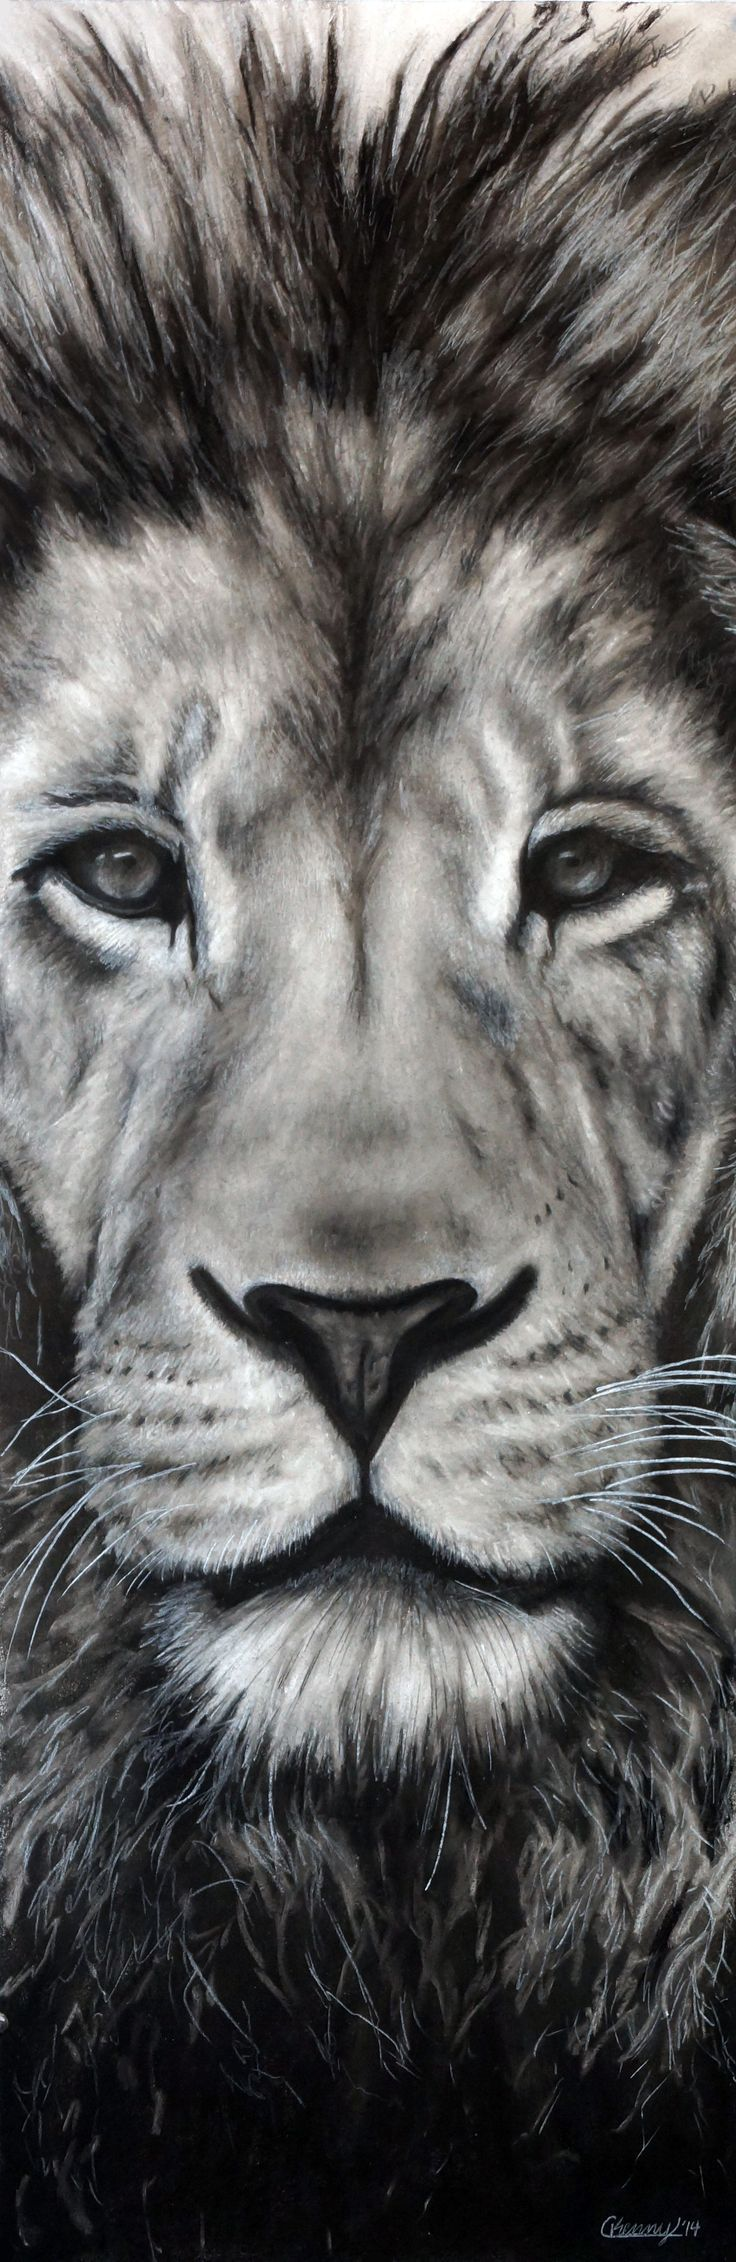 25 best ideas about black and white drawing on pinterest for Black and white lion tattoo